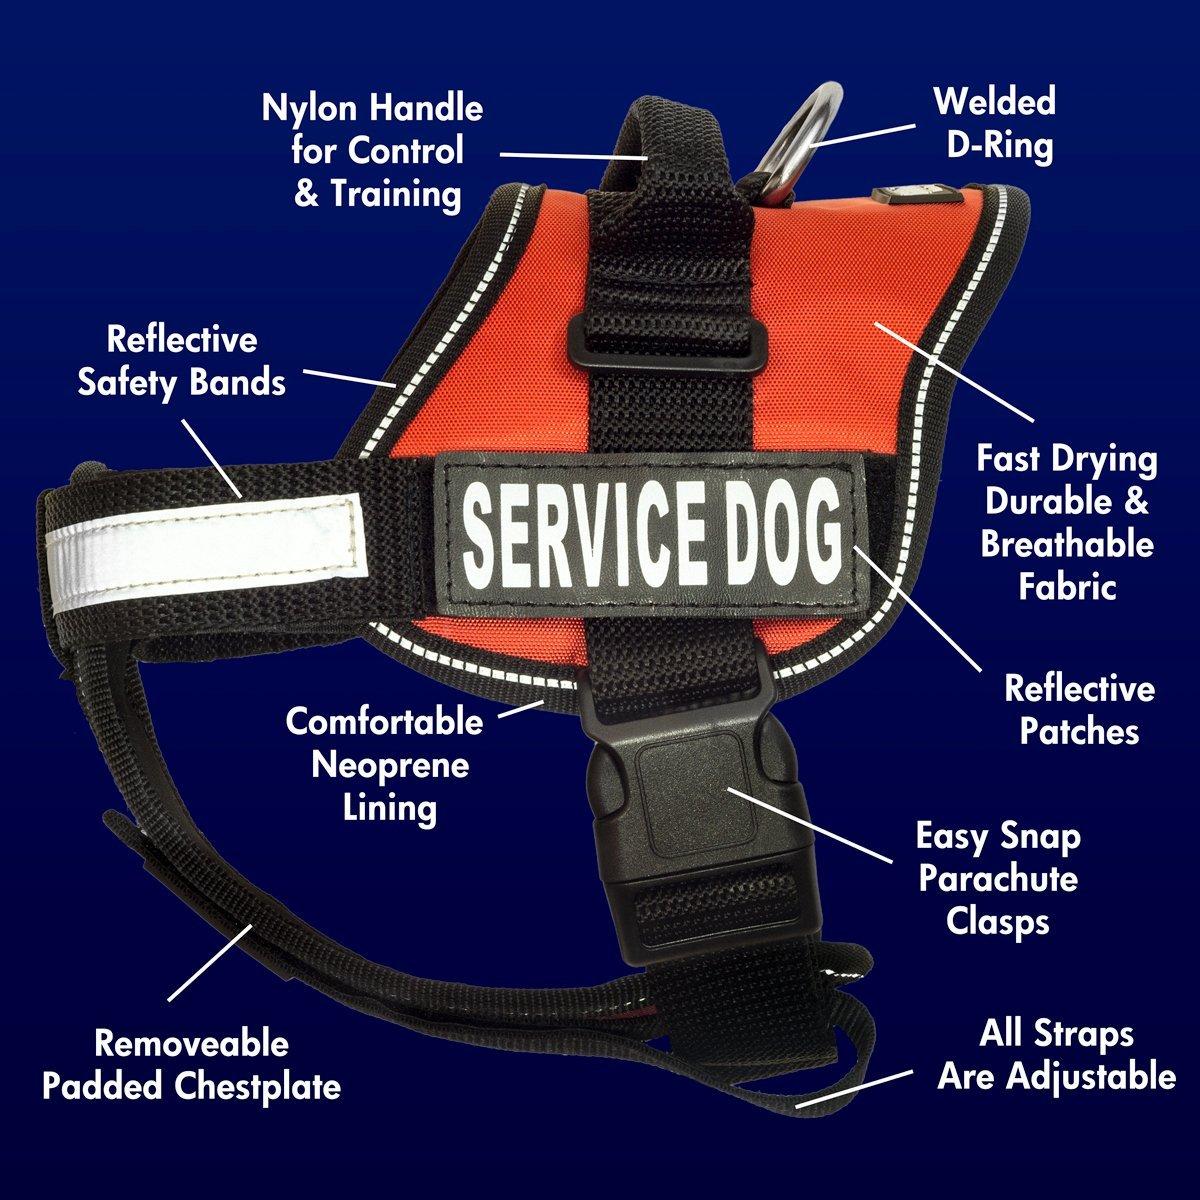 Red service dog harness with reflective band.